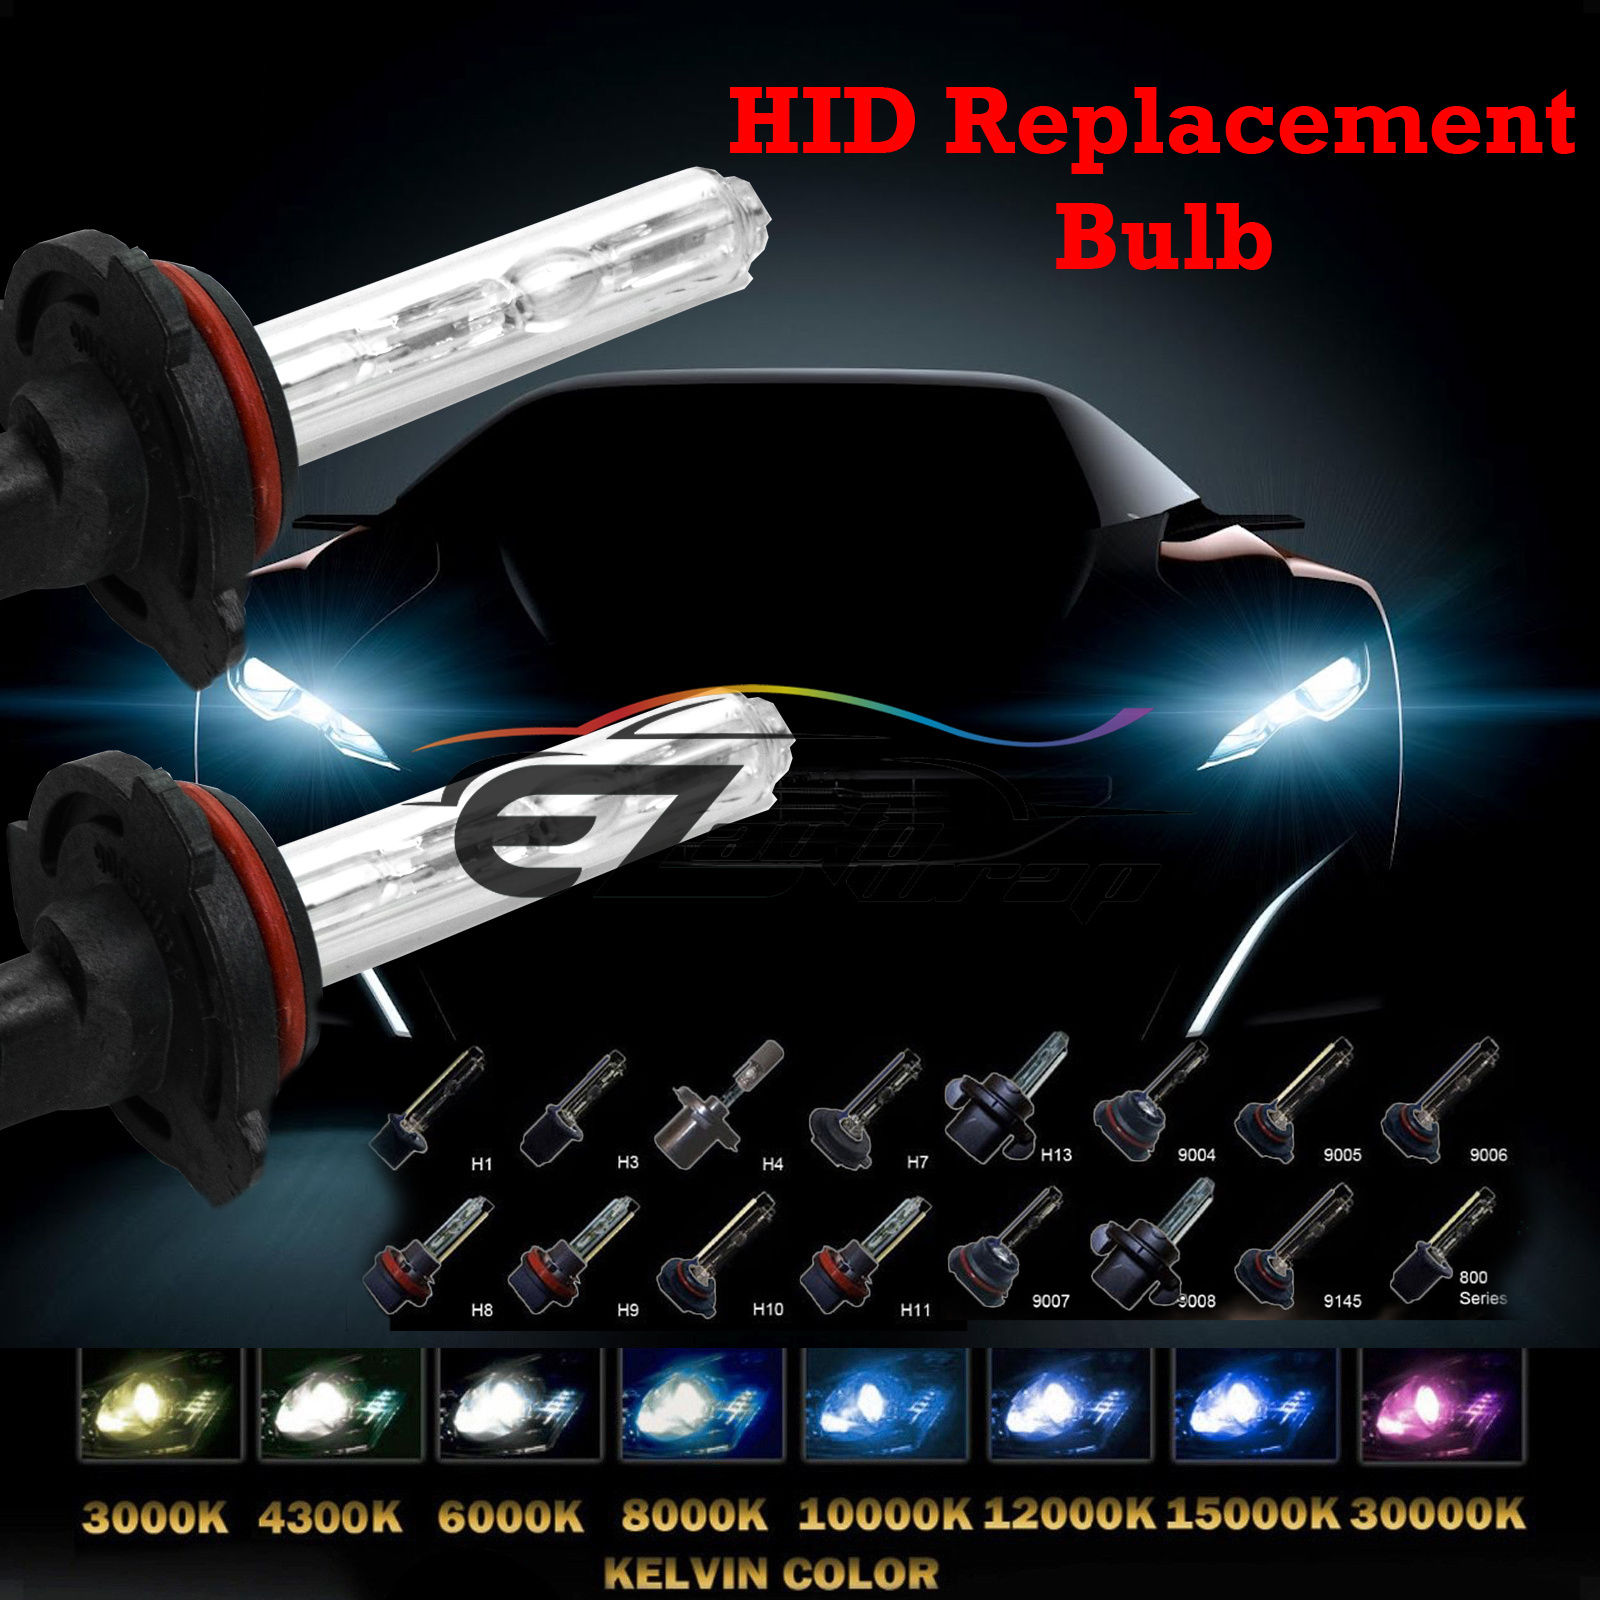 One Pair Xenon 35W 55W Replacement HID KIT's Light Bulbs H4 H7 H10 H11 H13 9004 9005 9006